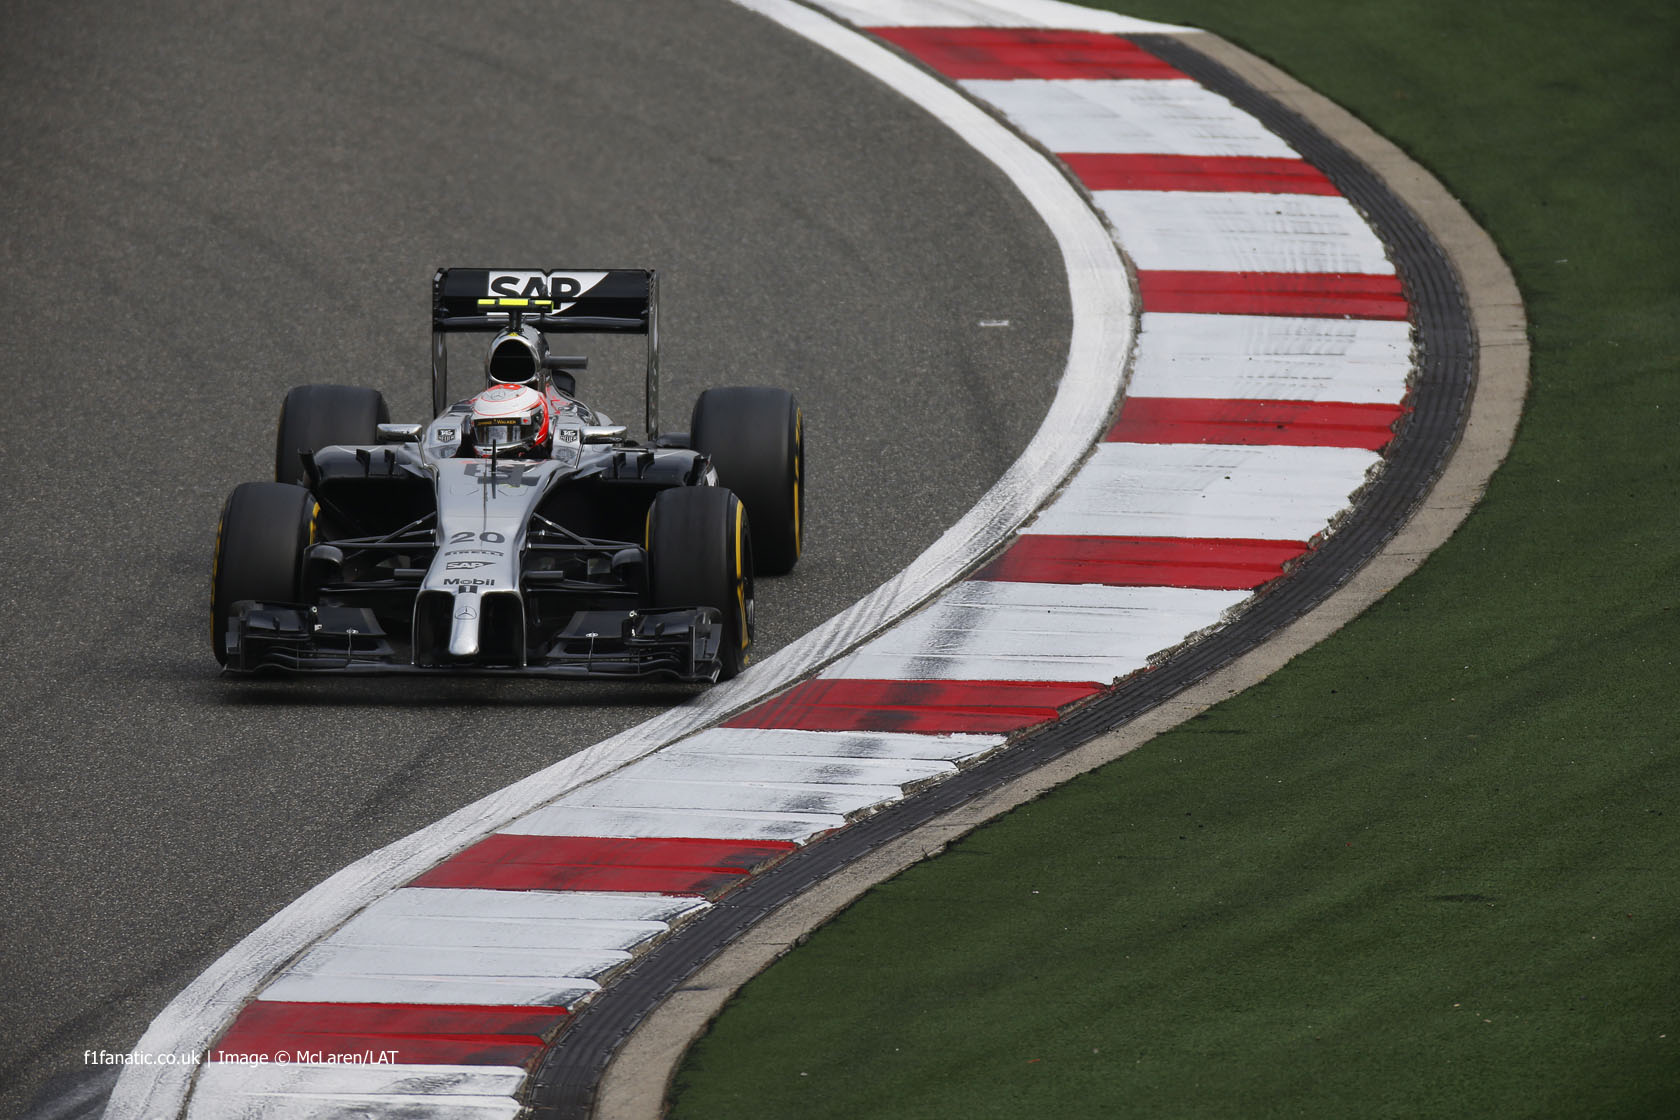 Kevin Magnussen, McLaren, Shanghai International Circuit, 2014